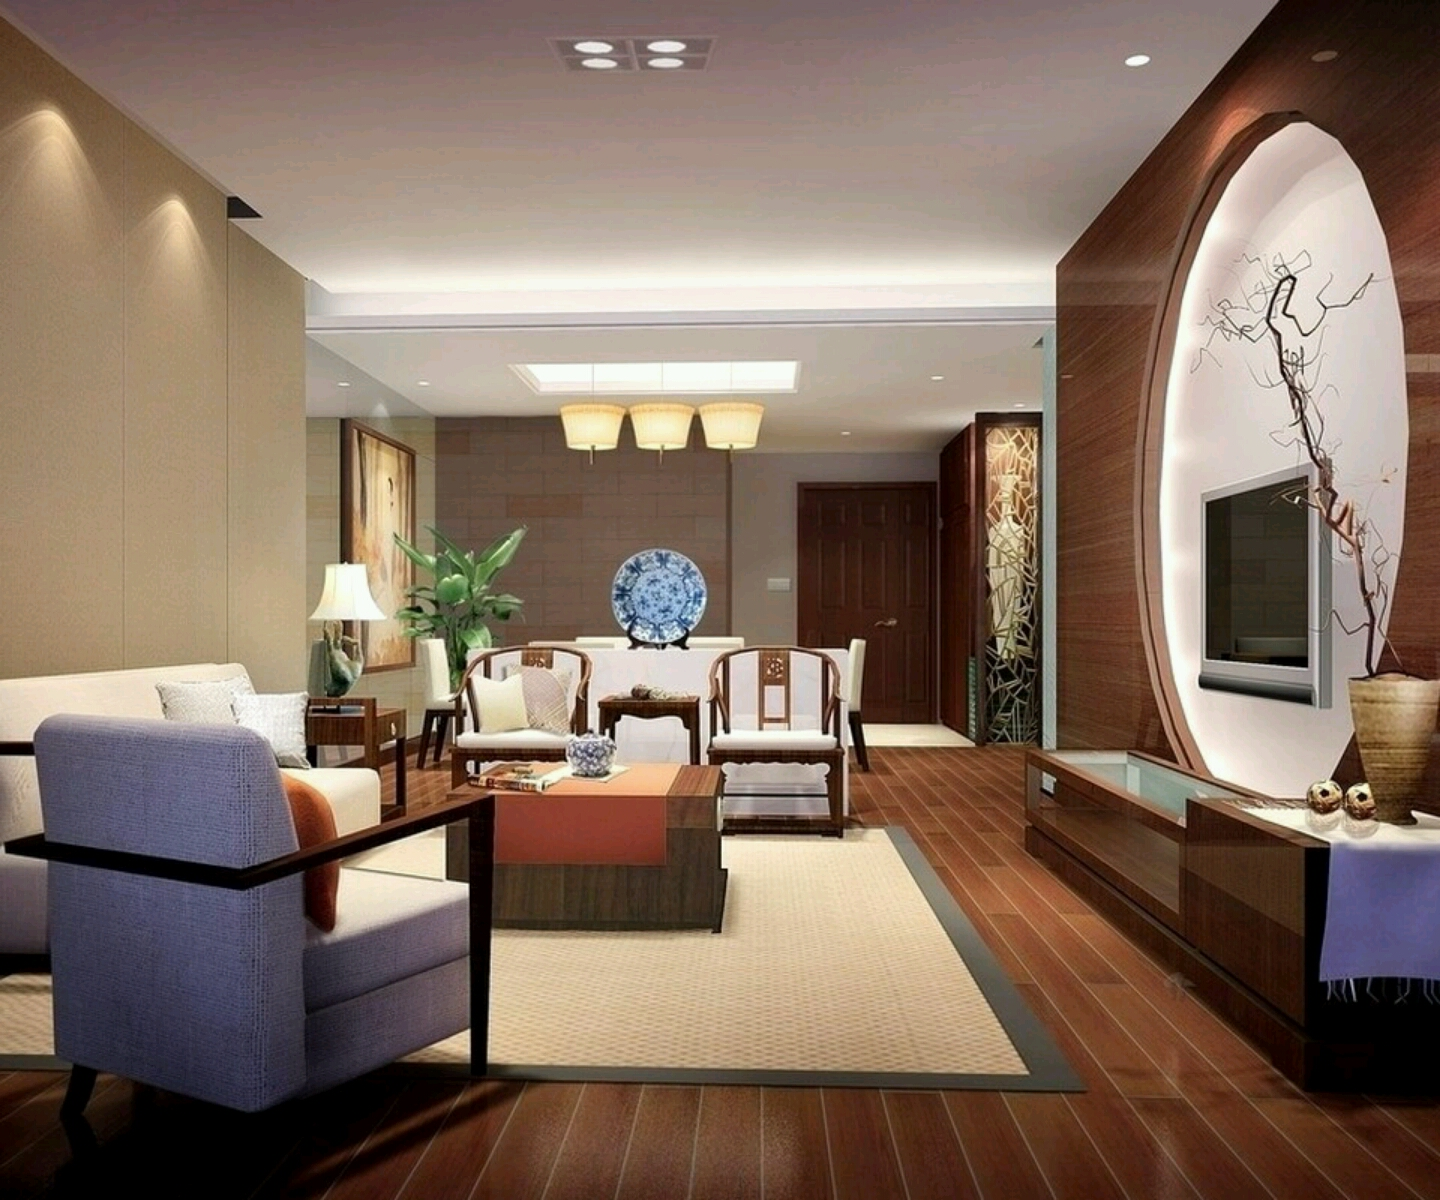 Luxury homes interior decoration living room designs ideas for New modern house interior design